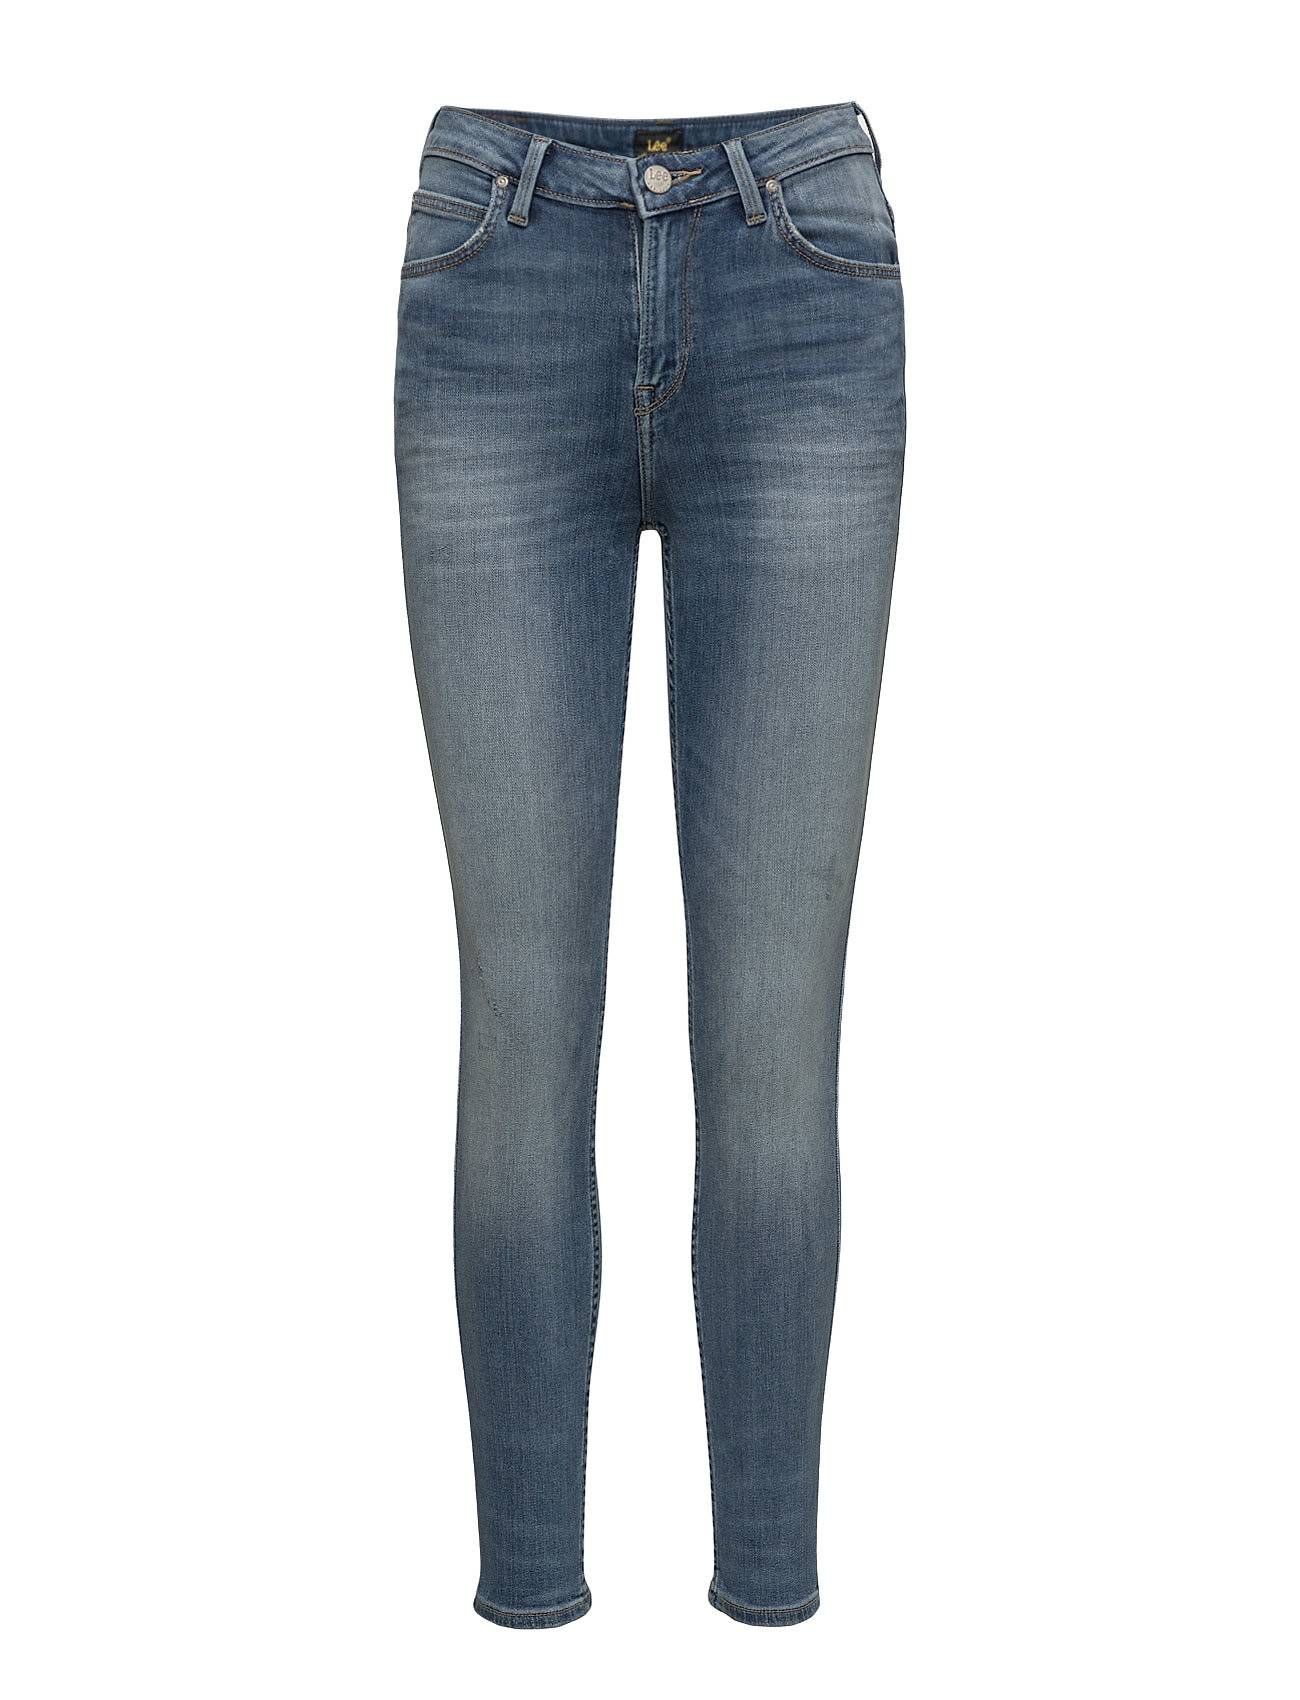 Lee Jeans Scarlett High Brooklyn Retro